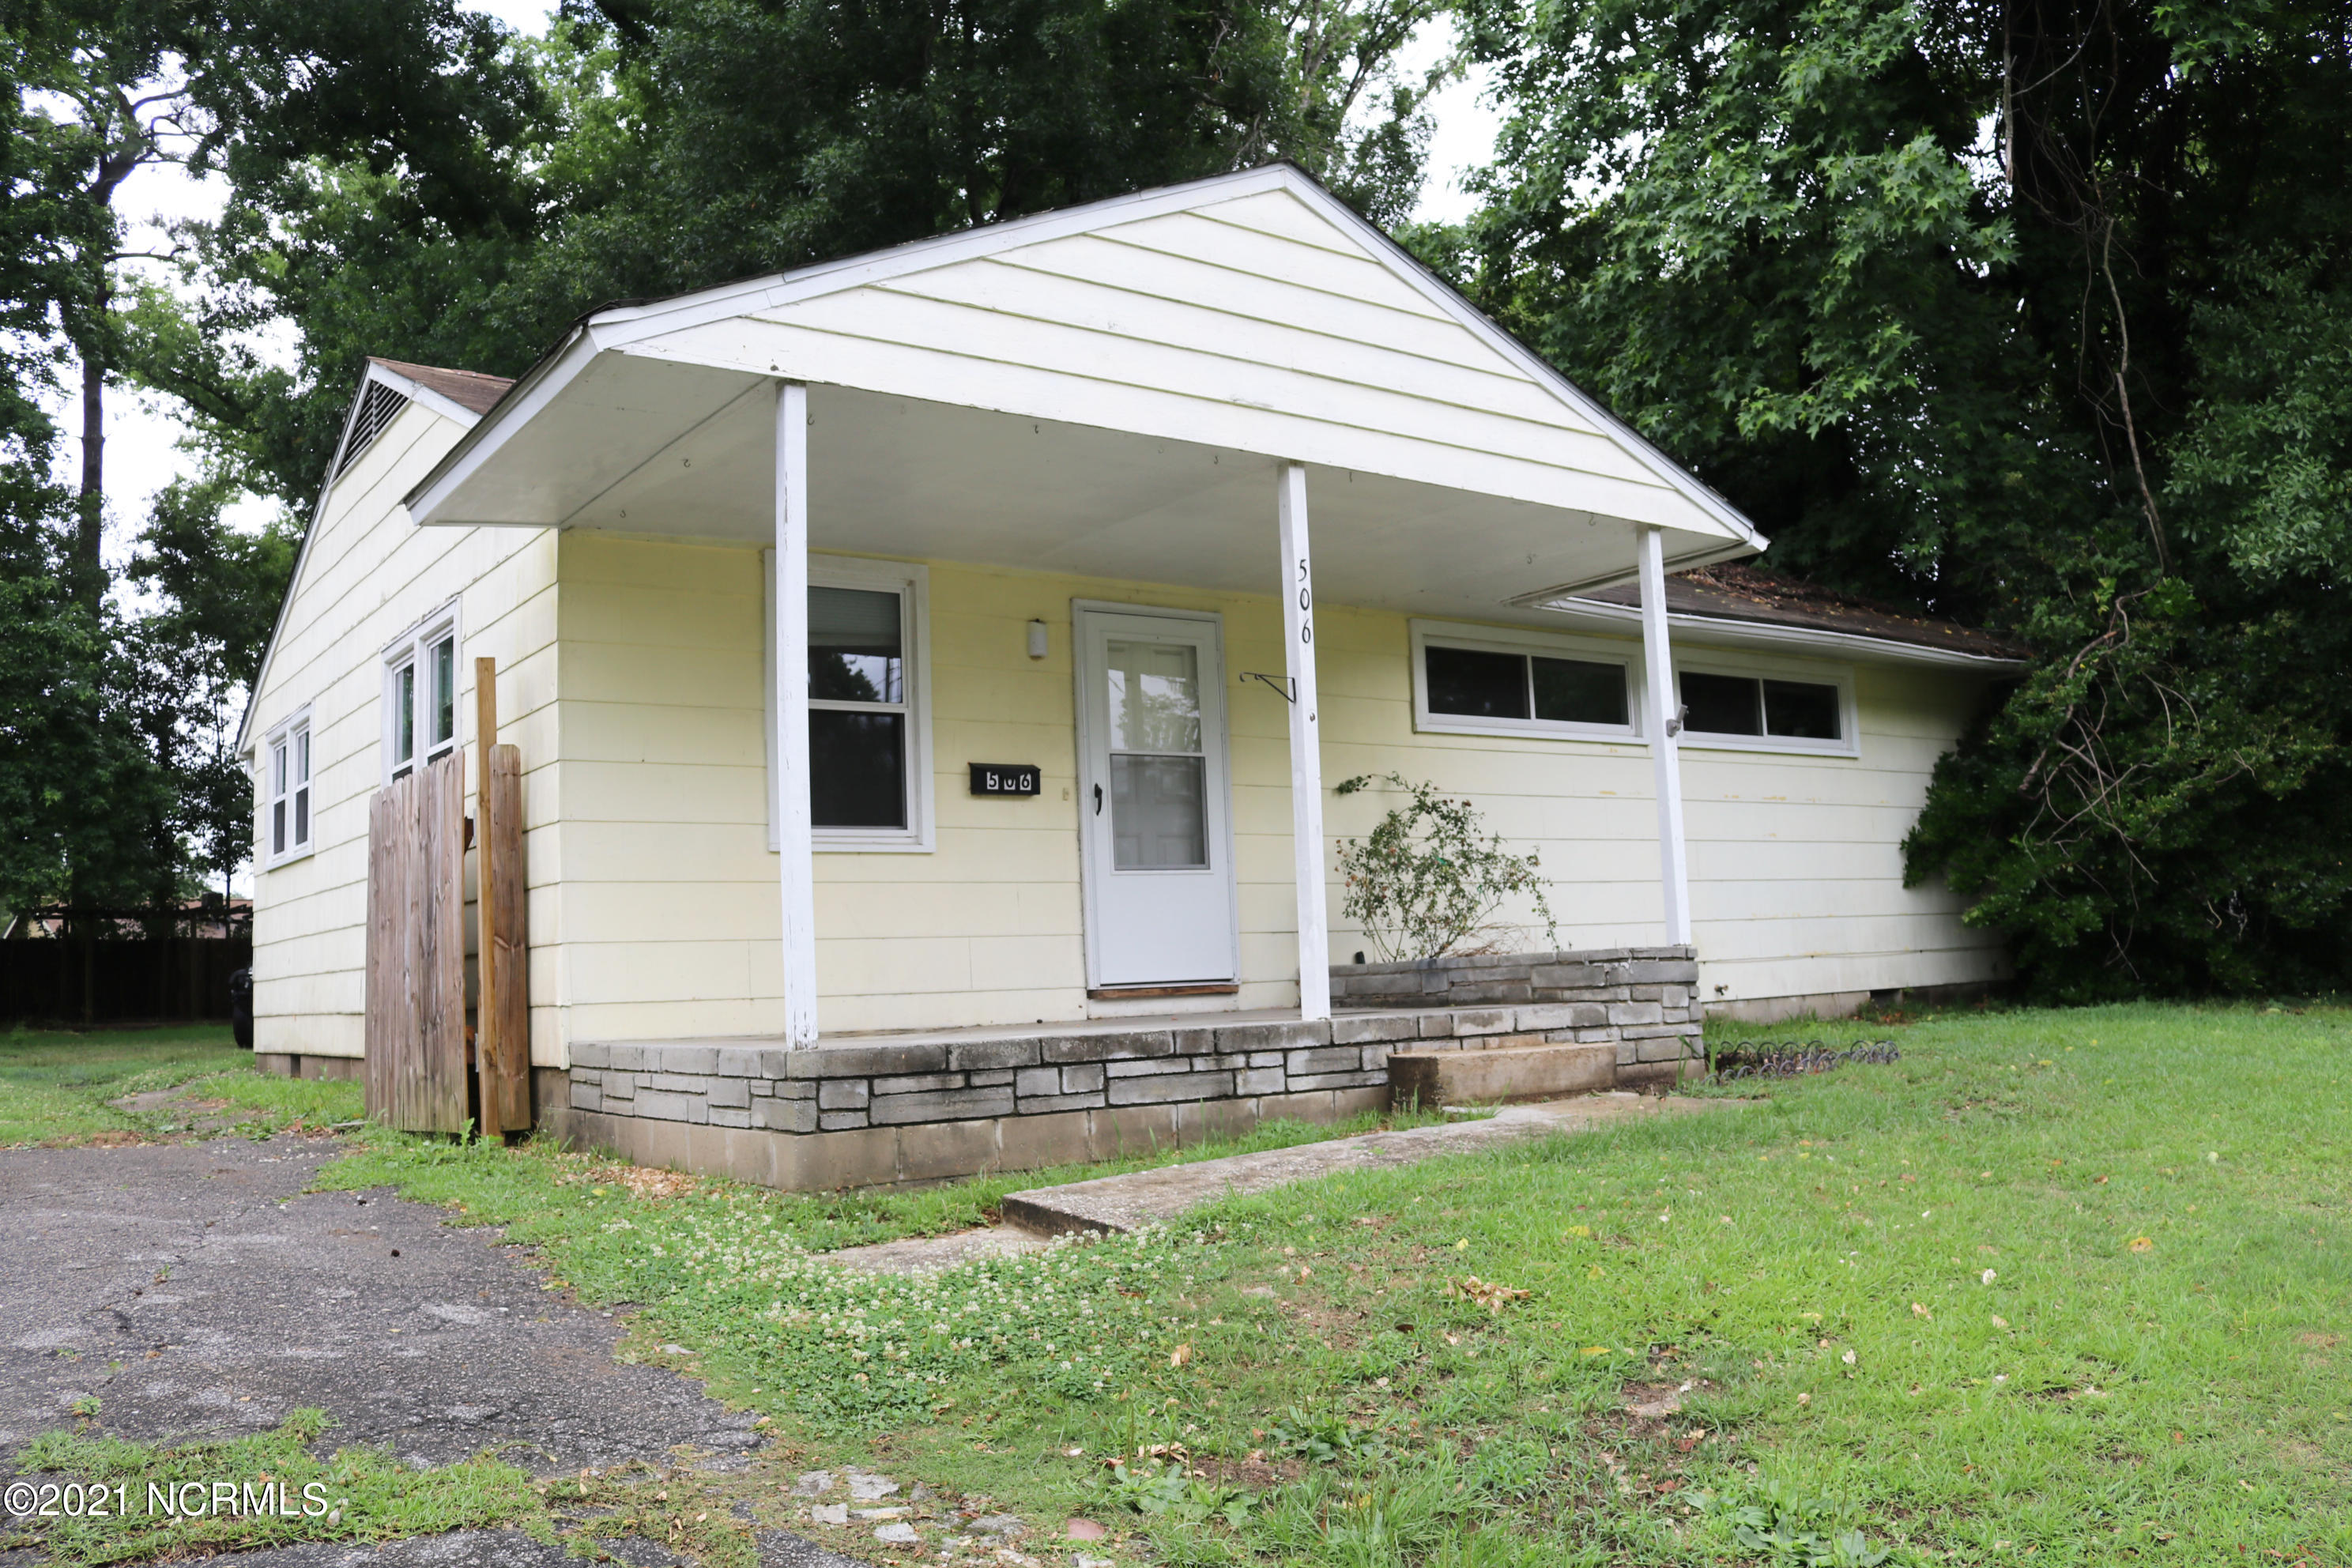 The possibilities are endless with this three bedroom INVESTOR SPECIAL! Walking through the front door to the living room, you'll notice sparkling original hardwood floors and tile throughout.  The upgraded, spacious kitchen offers matching appliances, stainless steel refrigerator with ice maker, subway tile backsplash, and pine-colored cabinets that complement the countertops. Adjacent to the kitchen is the laundry room, which has its own access door to the privacy-fenced back yard. You'll have your own oasis with shaded trees, a wired shed for extra storage, vegetable planters, and a pergola. Enjoy the cool Carolina days on the covered front porch! Just a short drive away are local schools, beaches, hospitals, military bases, shopping centers, and much more. Call today to schedule your showing! (Cash or conventional loans only)